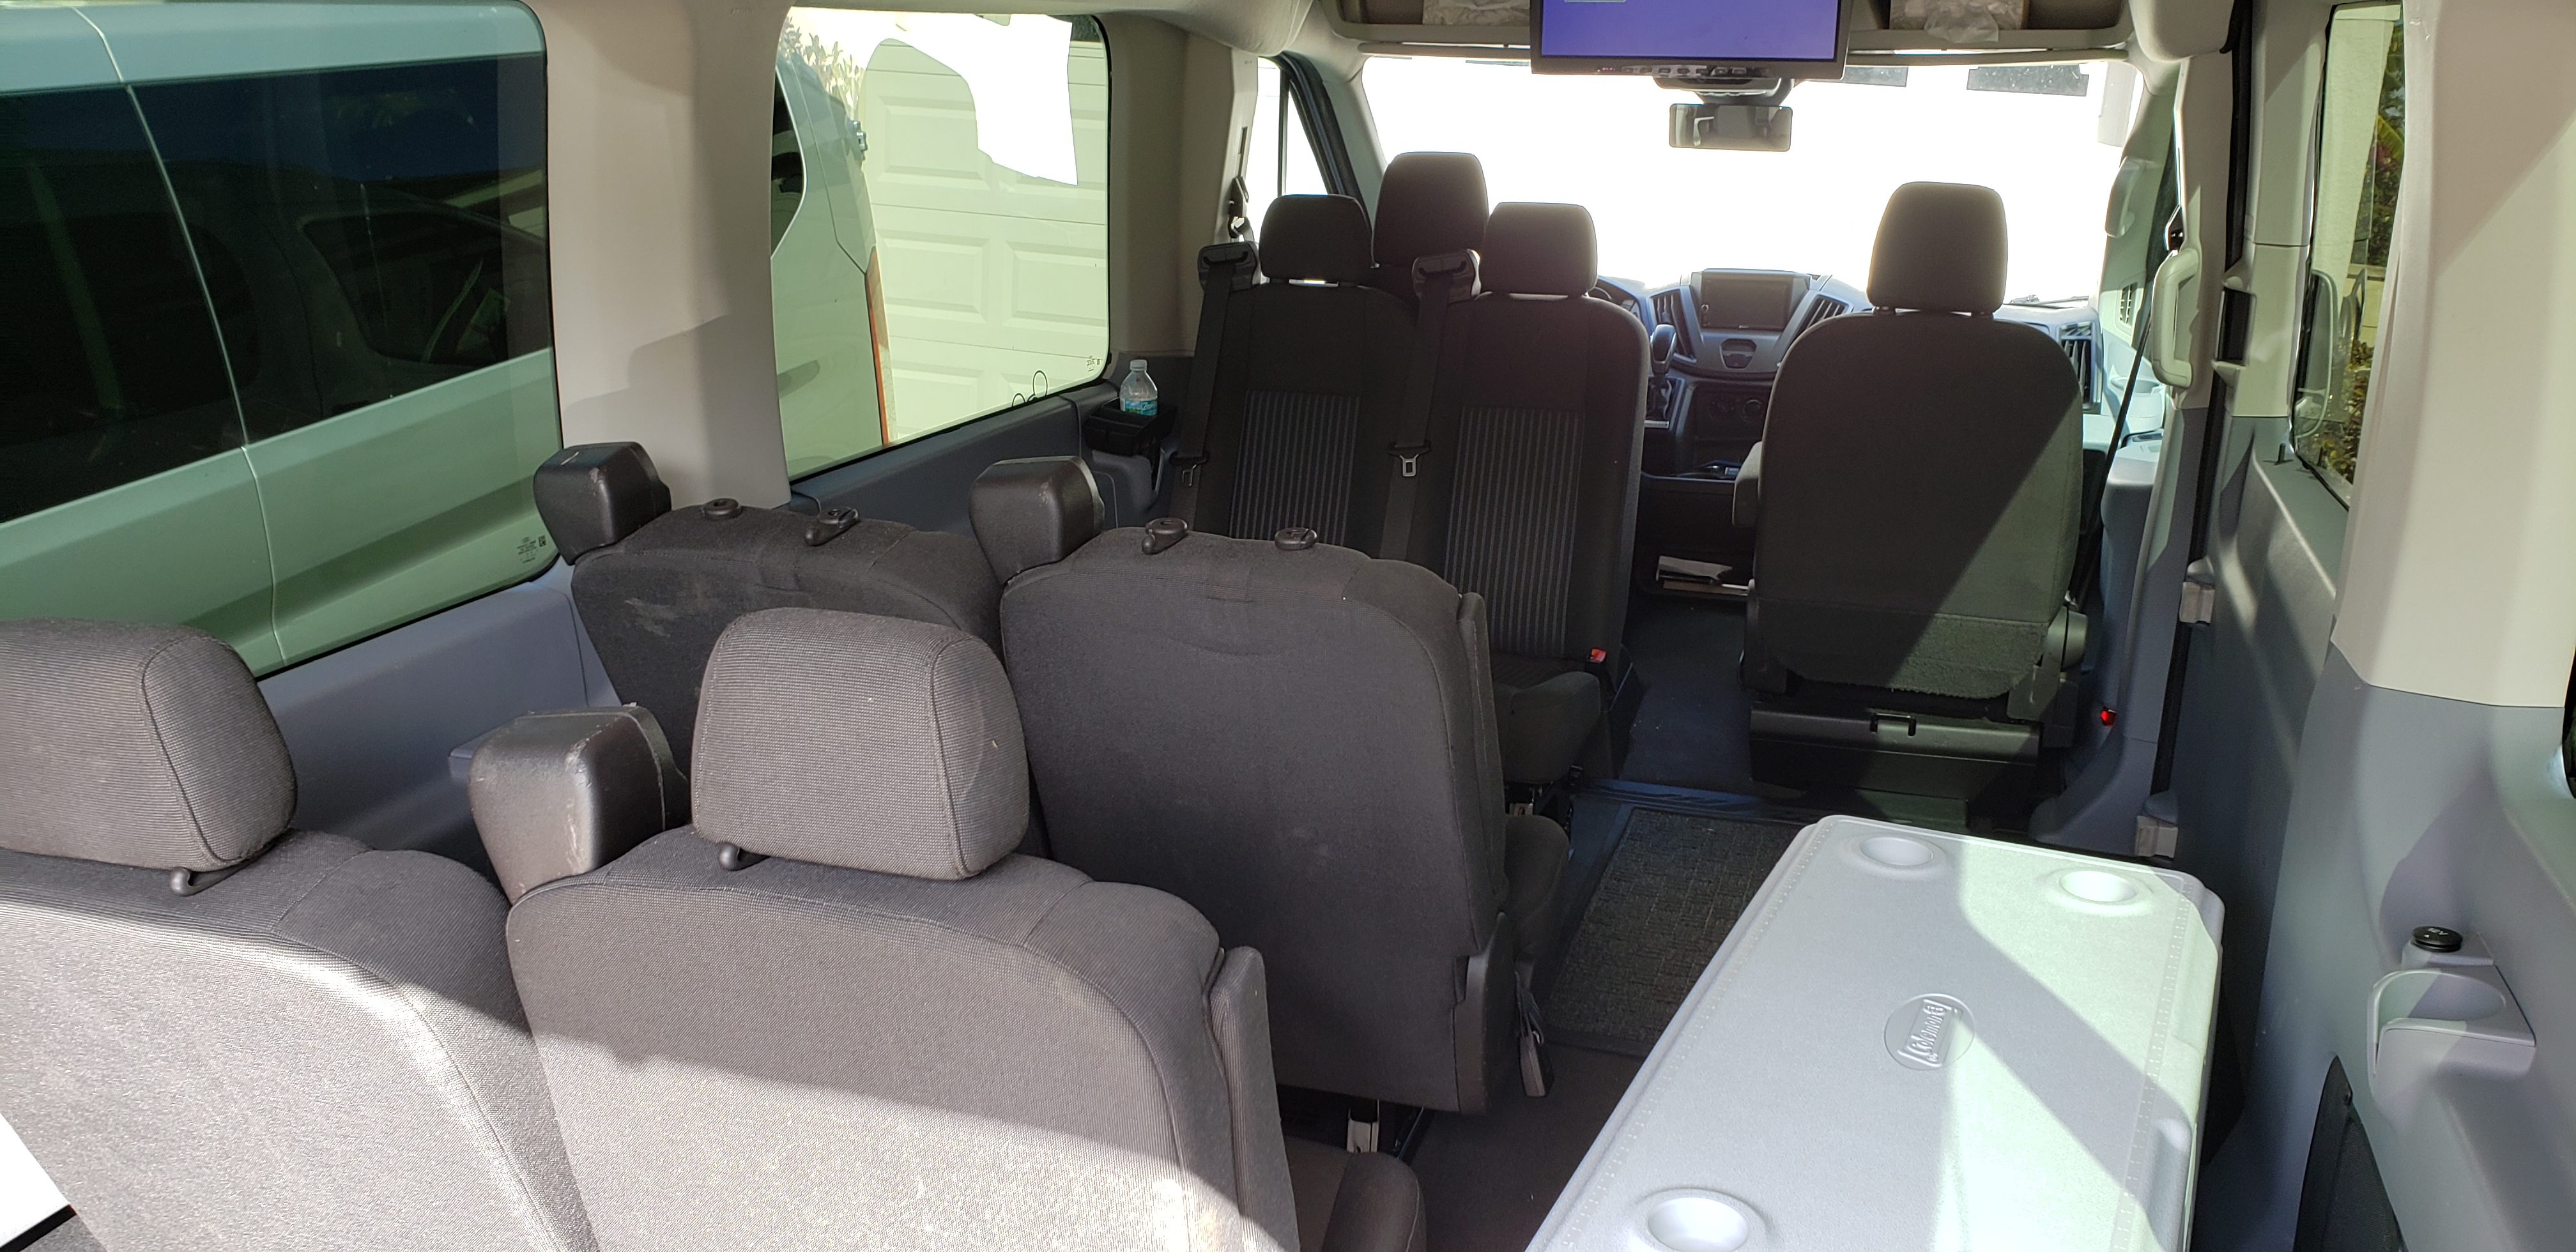 Relocating Seats To Increase Legroom Ford Transit Usa Forum